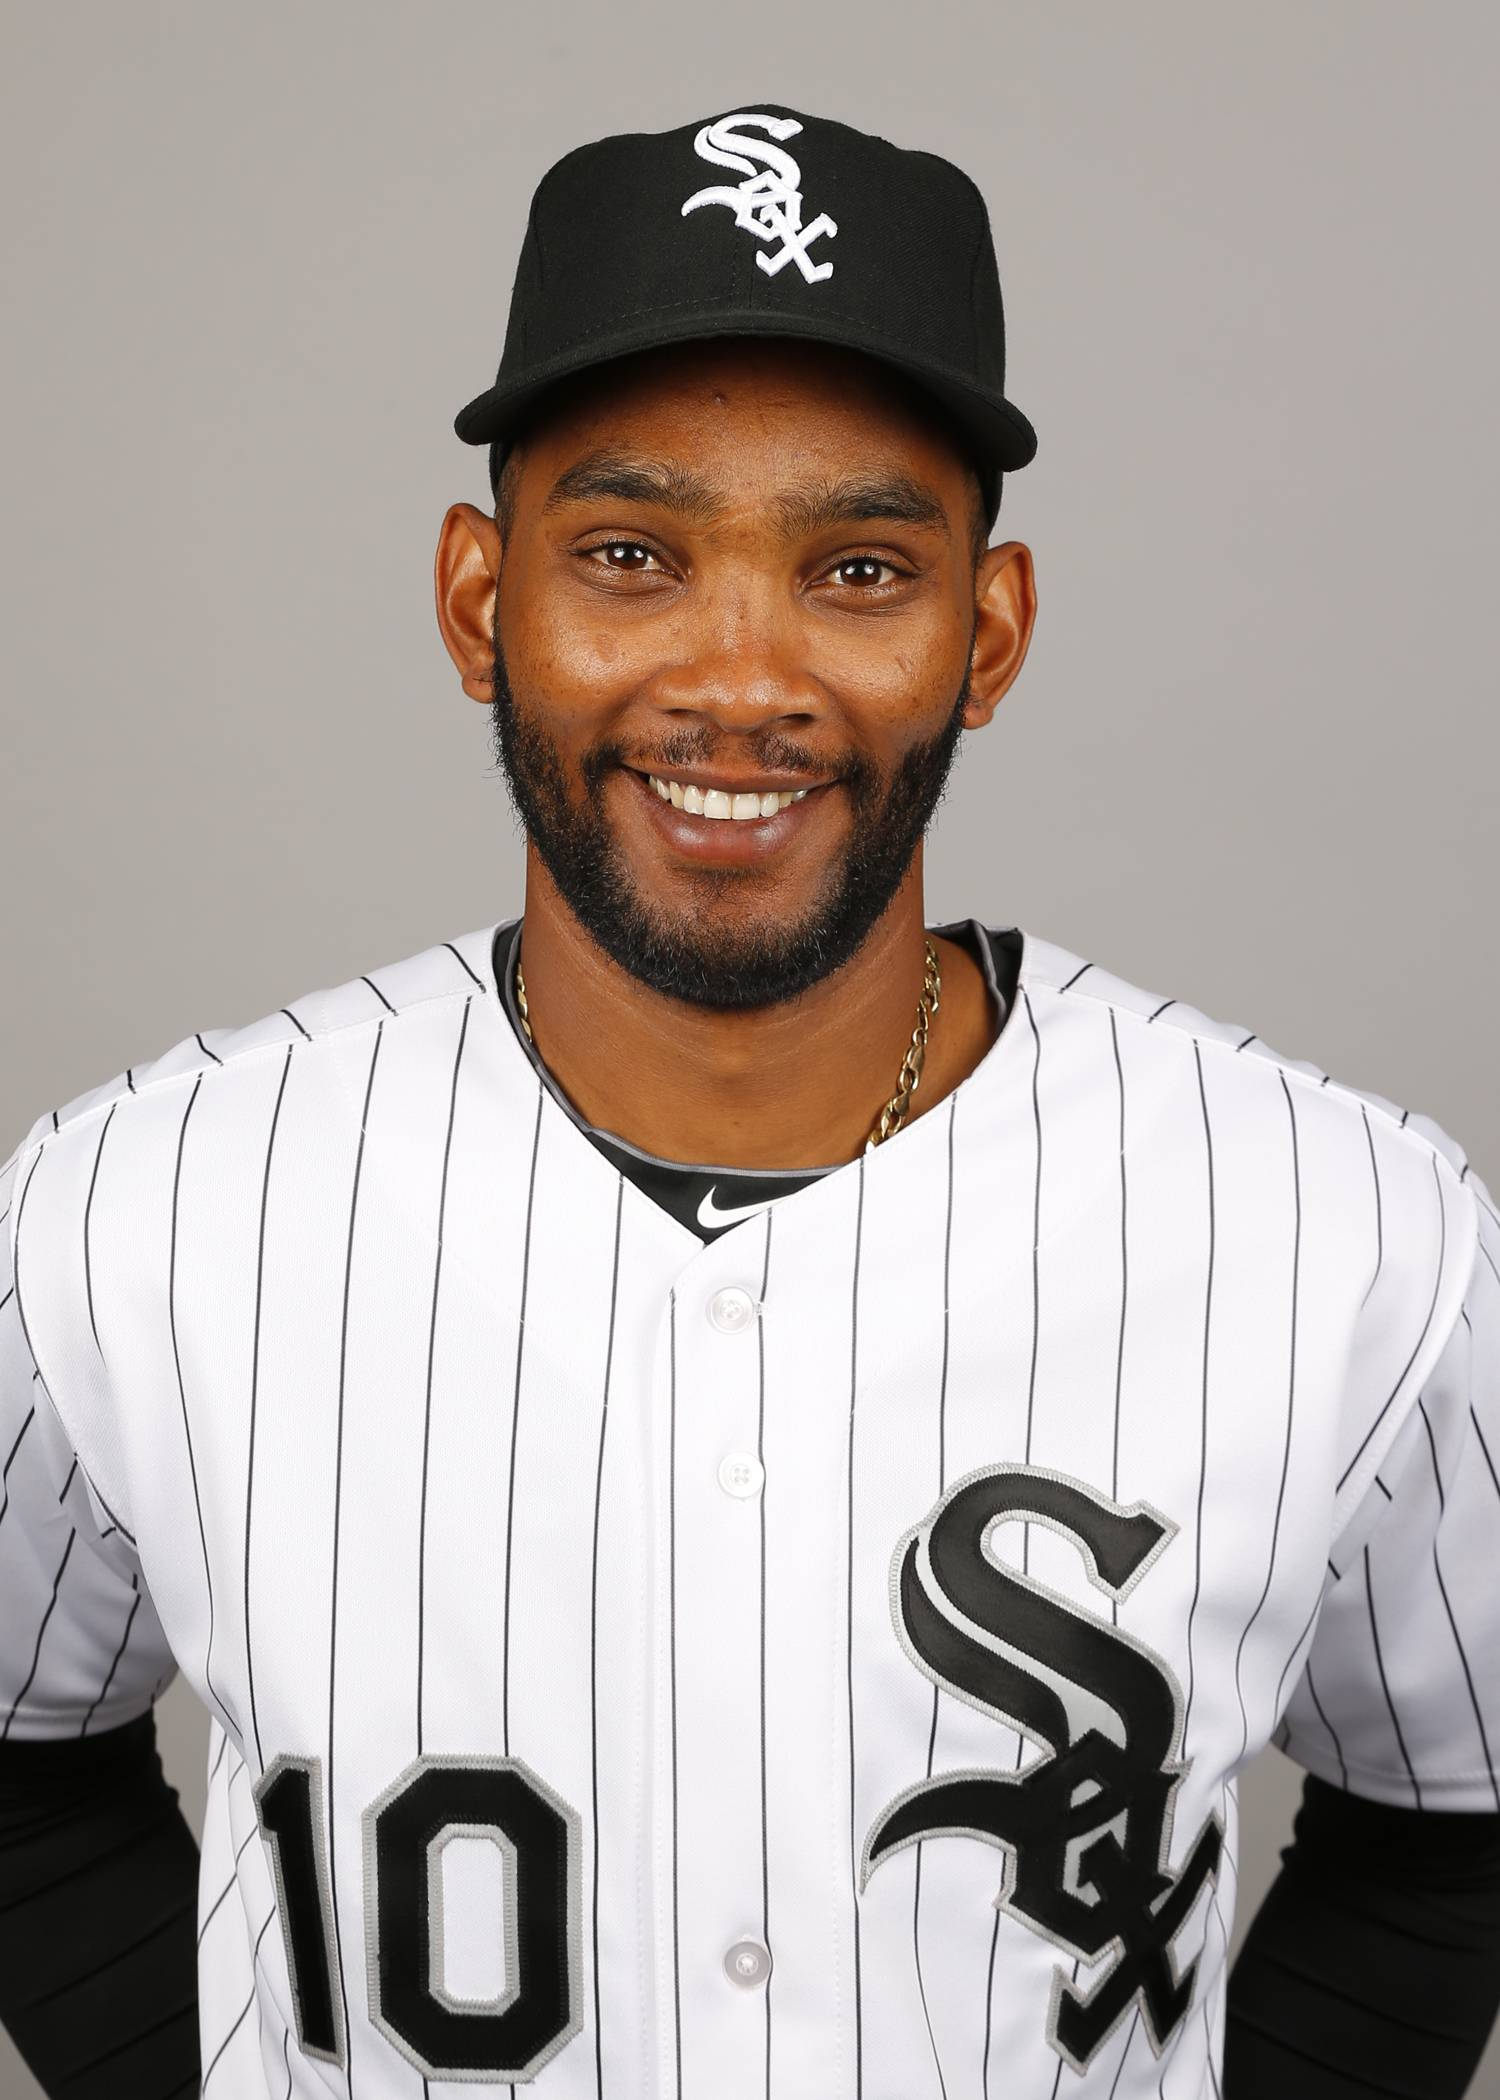 This is a 2014 photo of White Sox shortstop Alexei Ramirez. This image reflects the 2014 active roster as of Feb. 22, 2014 when this image was taken in Glendale, Ariz.